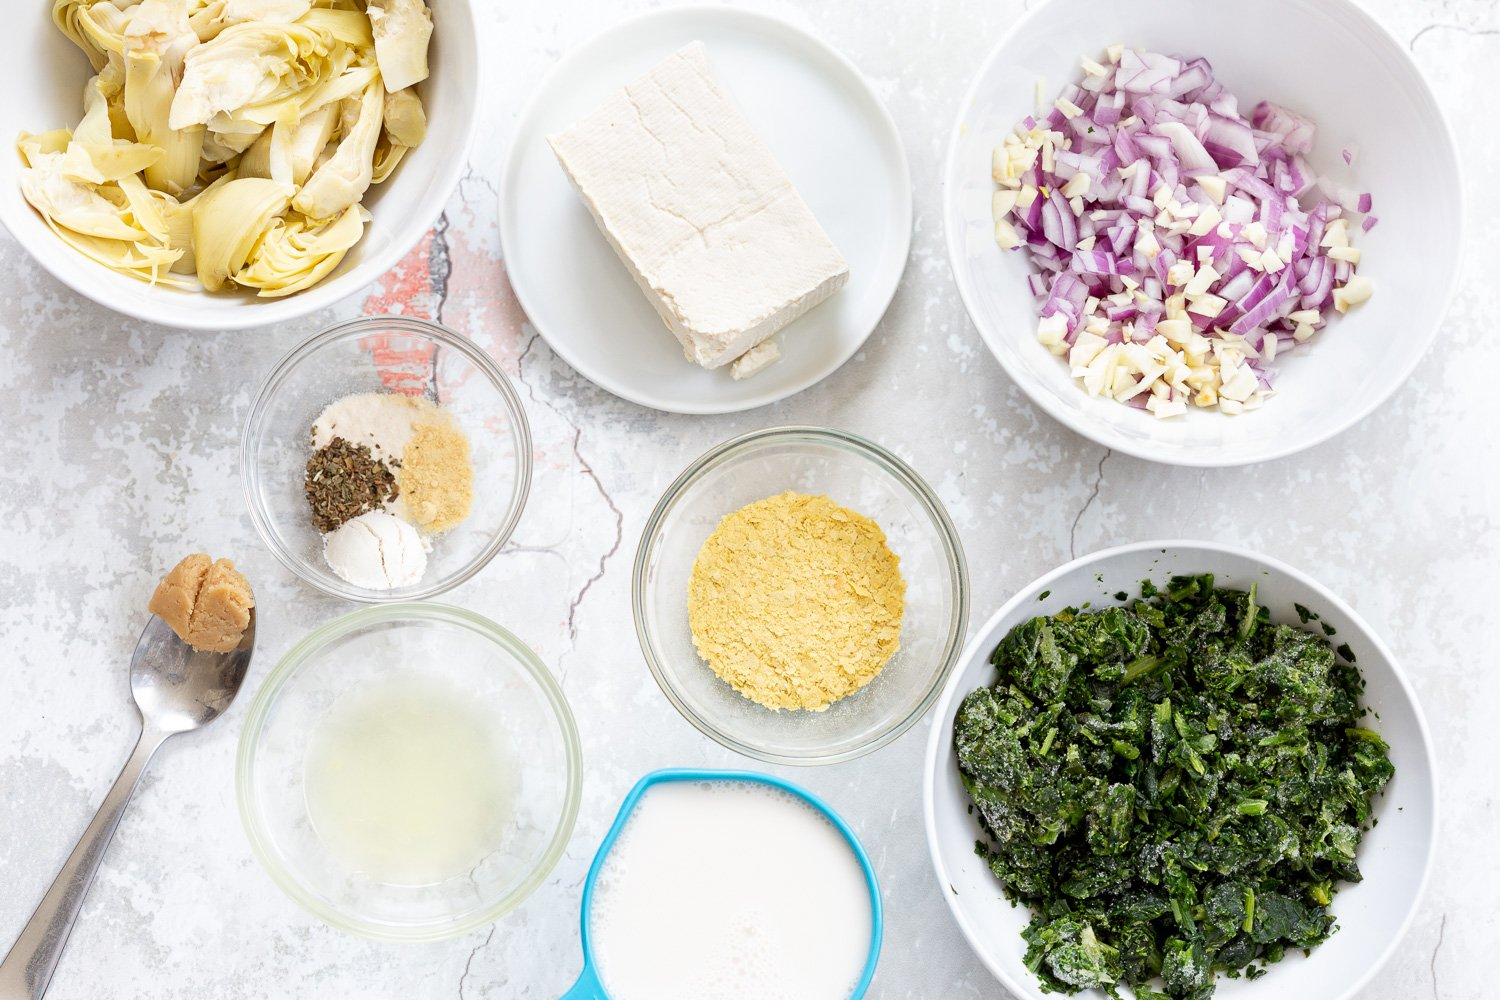 overhead shot of ingredients needed for making spinach artichoke pasta bake